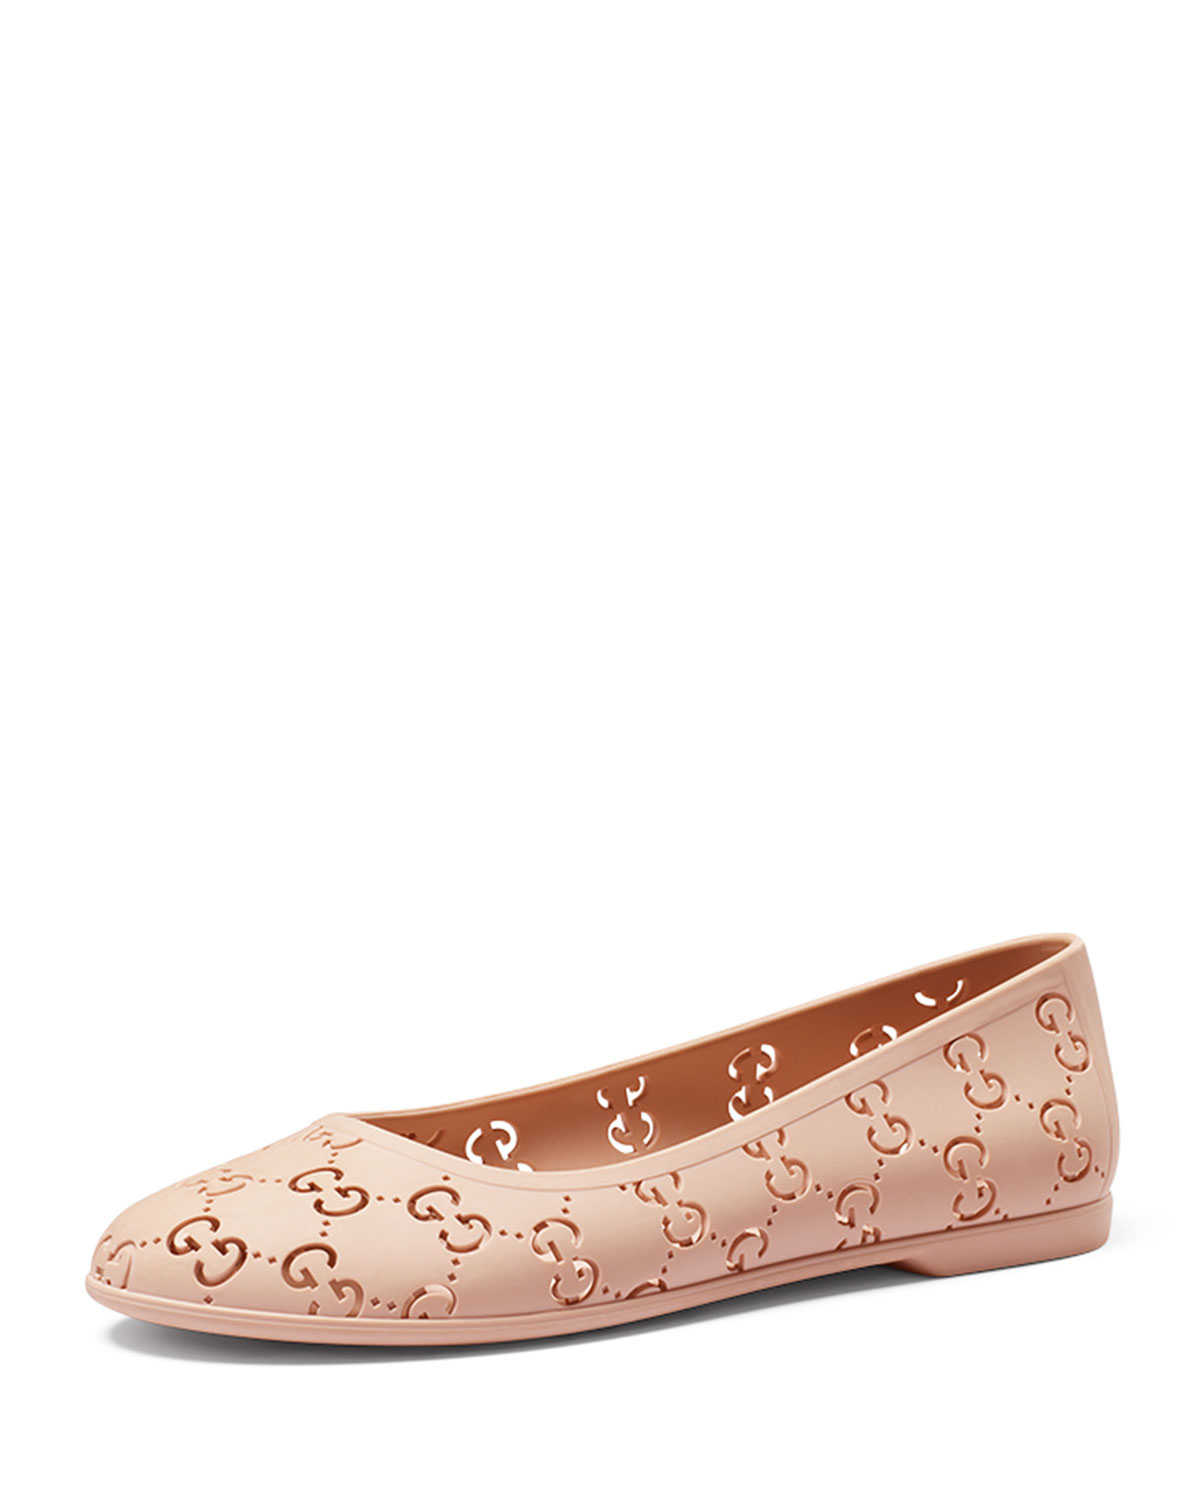 76616f230cc5 Lyst - Gucci Gg Jelly Ballet Flats in Pink